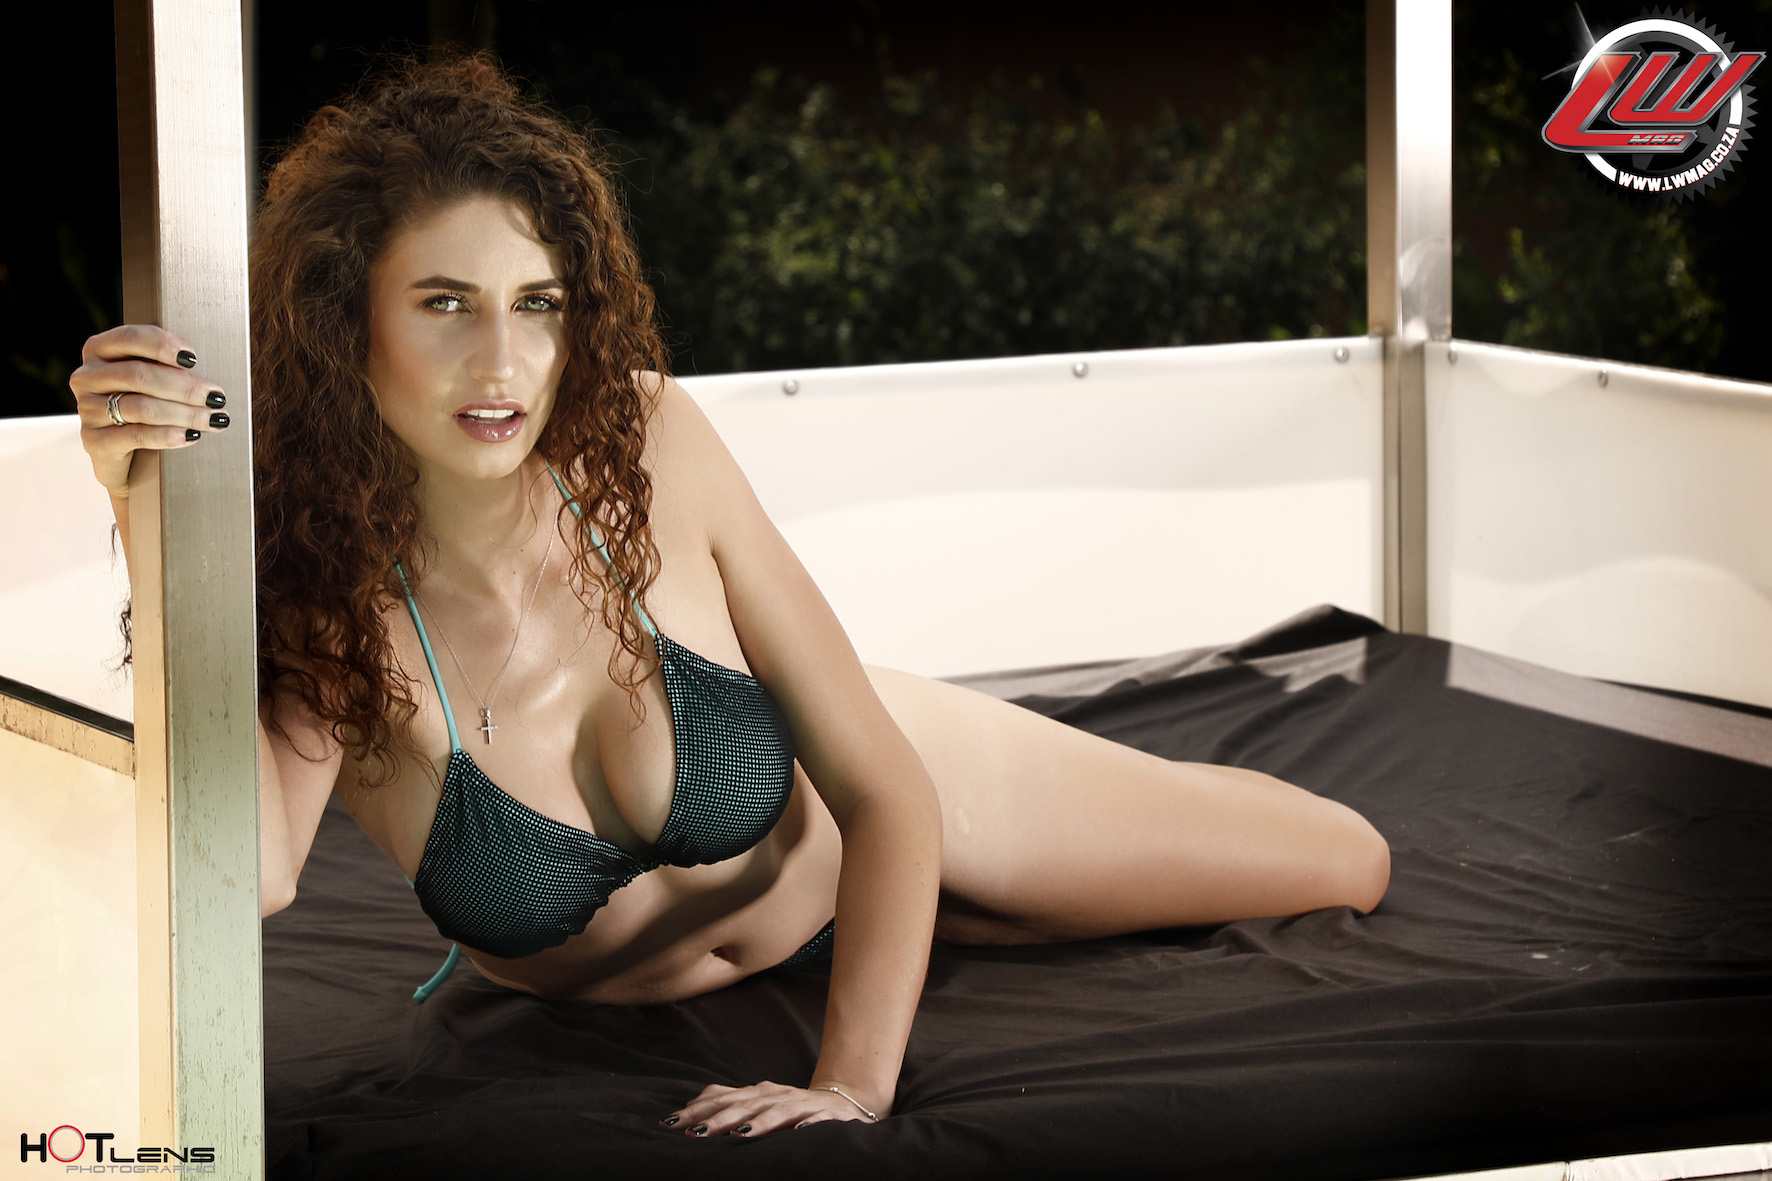 Meet Romandie Schnepel in our South African Babes feature